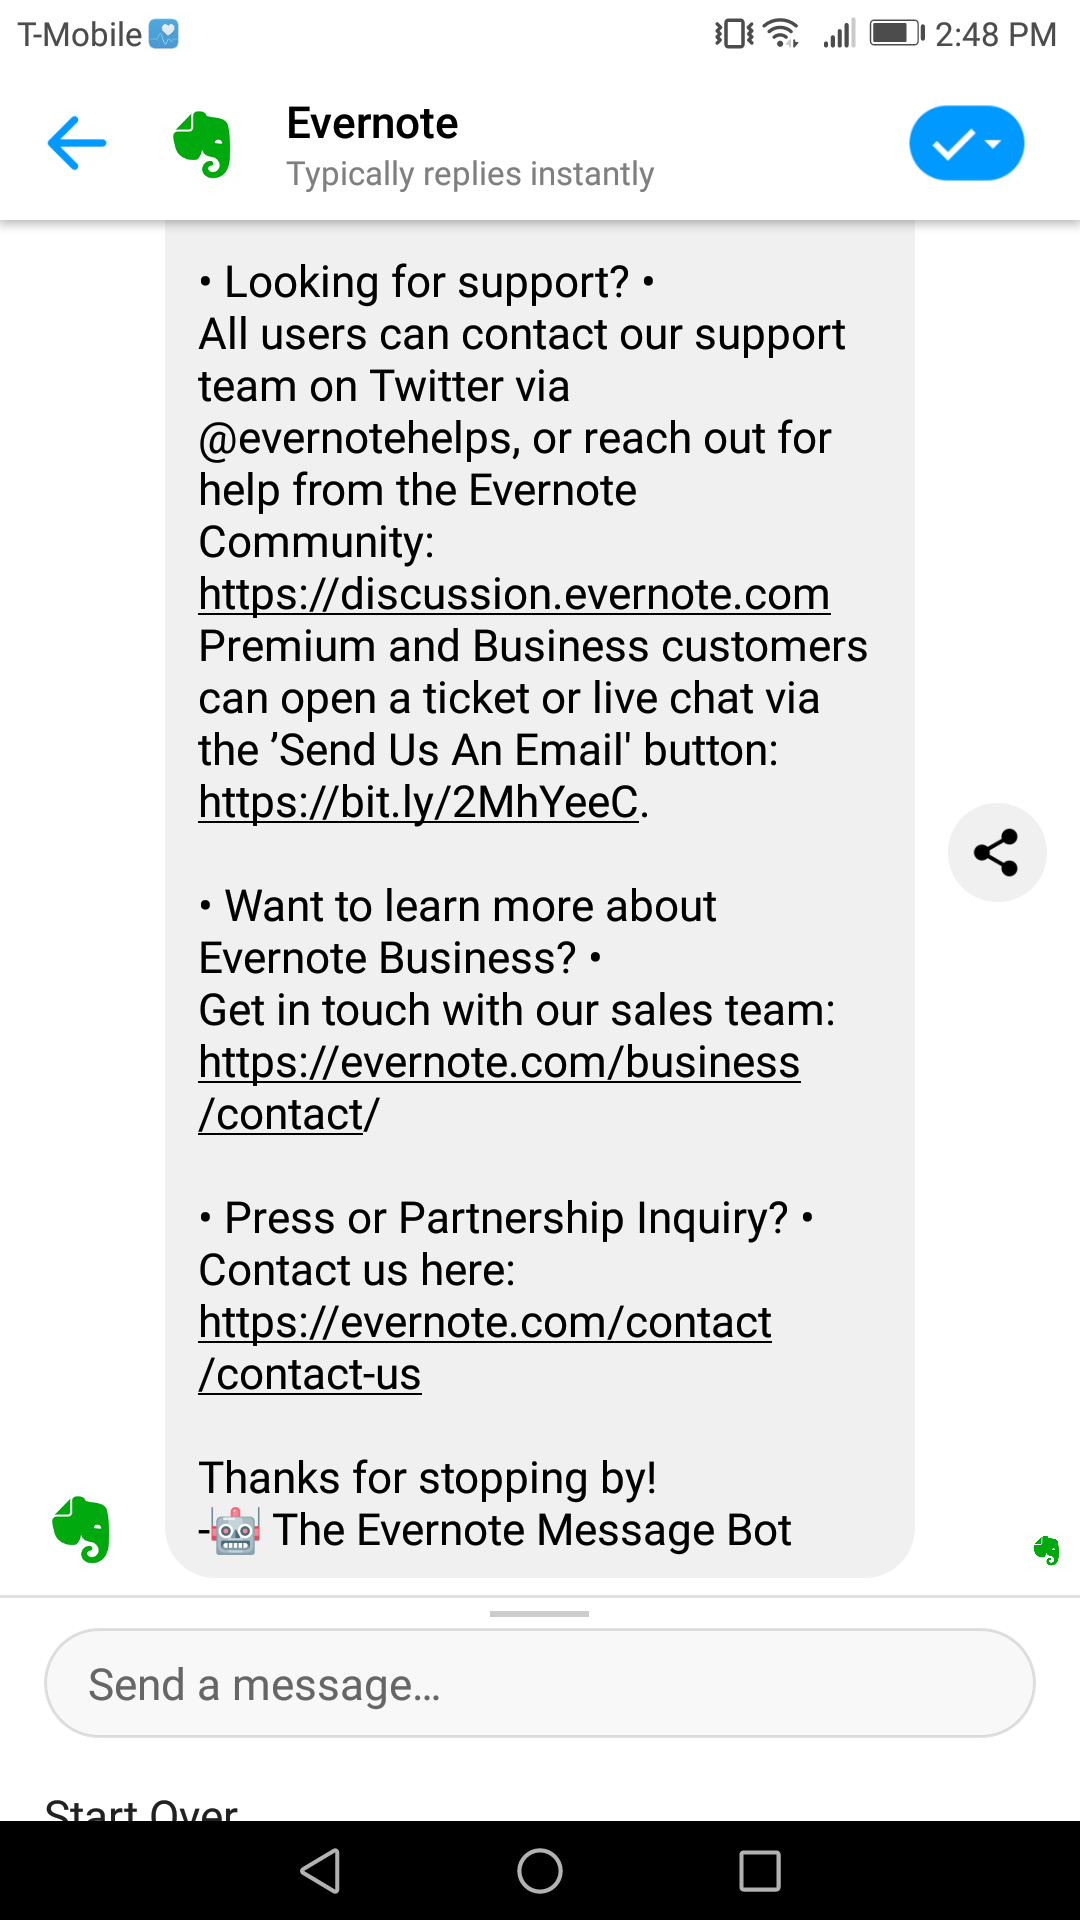 Evernote is different from your other chatbot marketing examples because it's a single-message bot that promotes users to go off-site